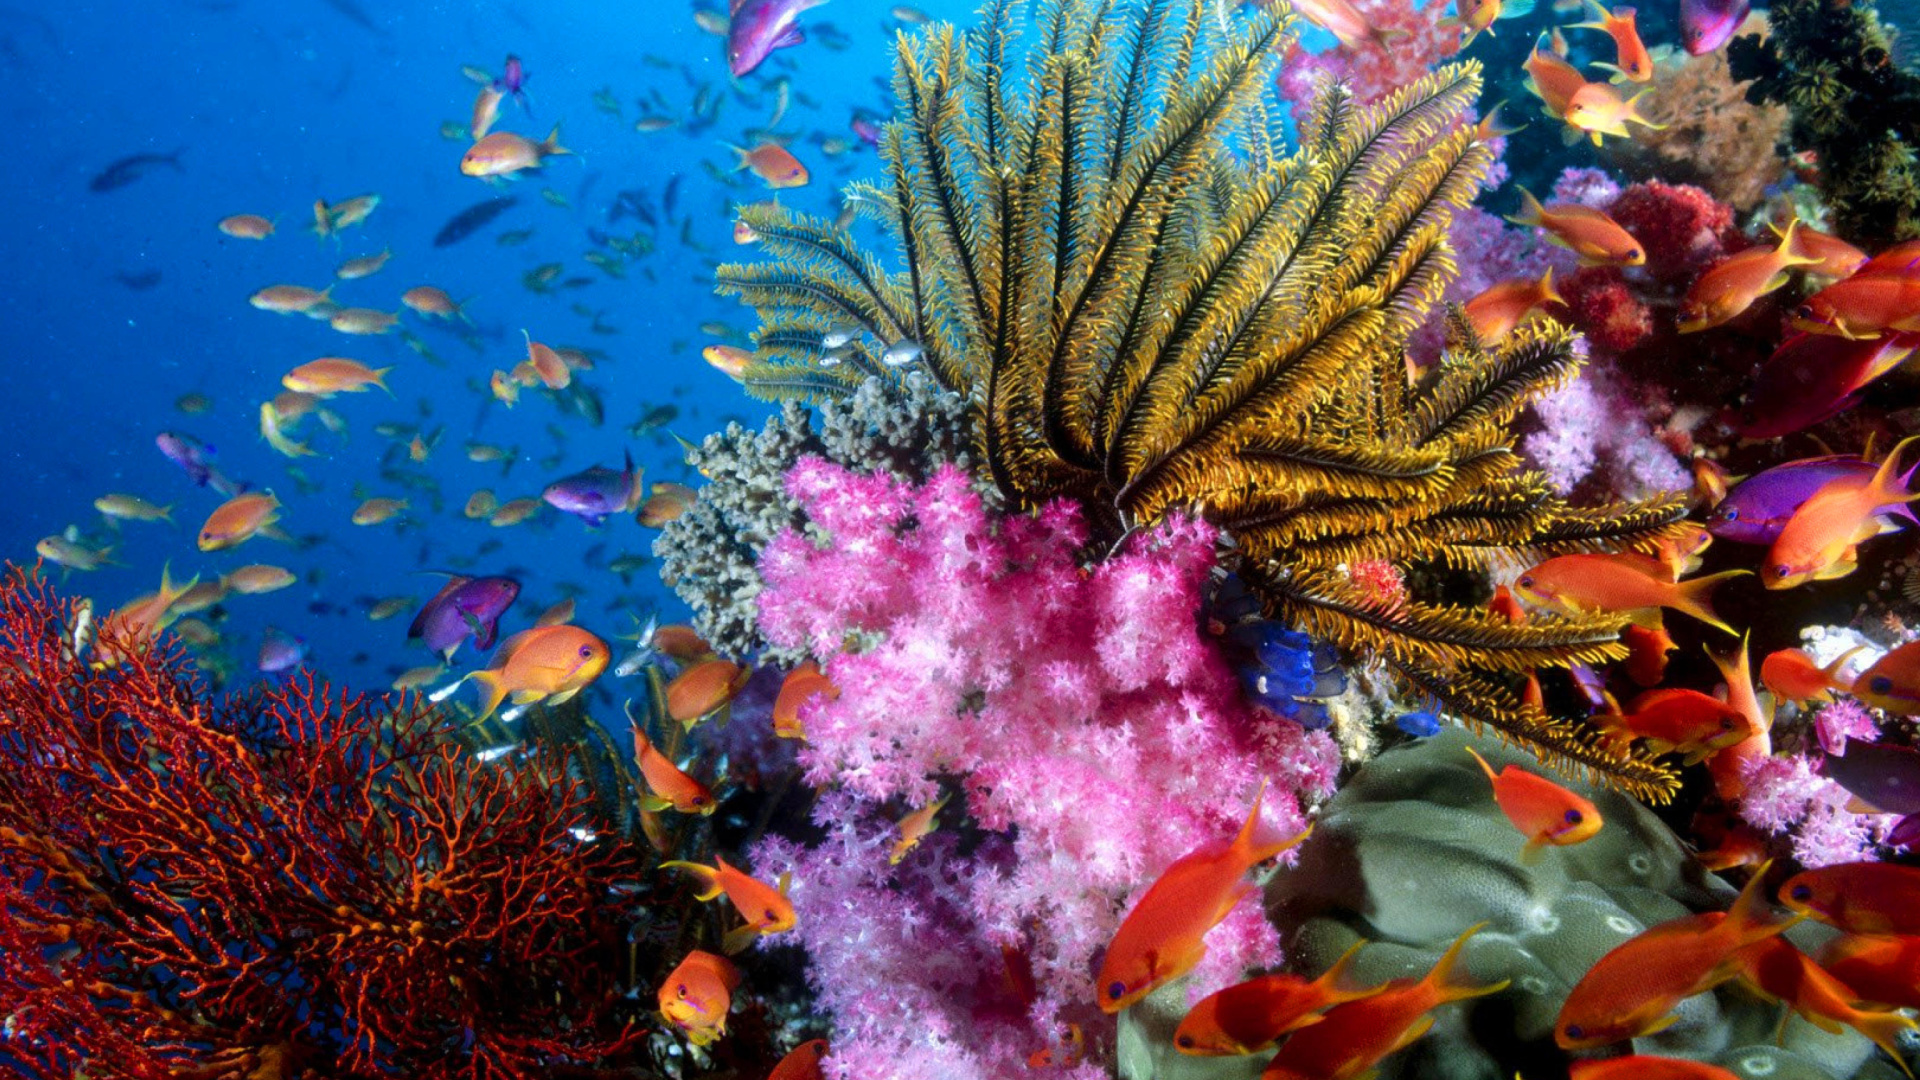 Aquarium World with Coral Reef Wallpaper for Desktop ...  Coral Reef Wallpaper 1920x1080